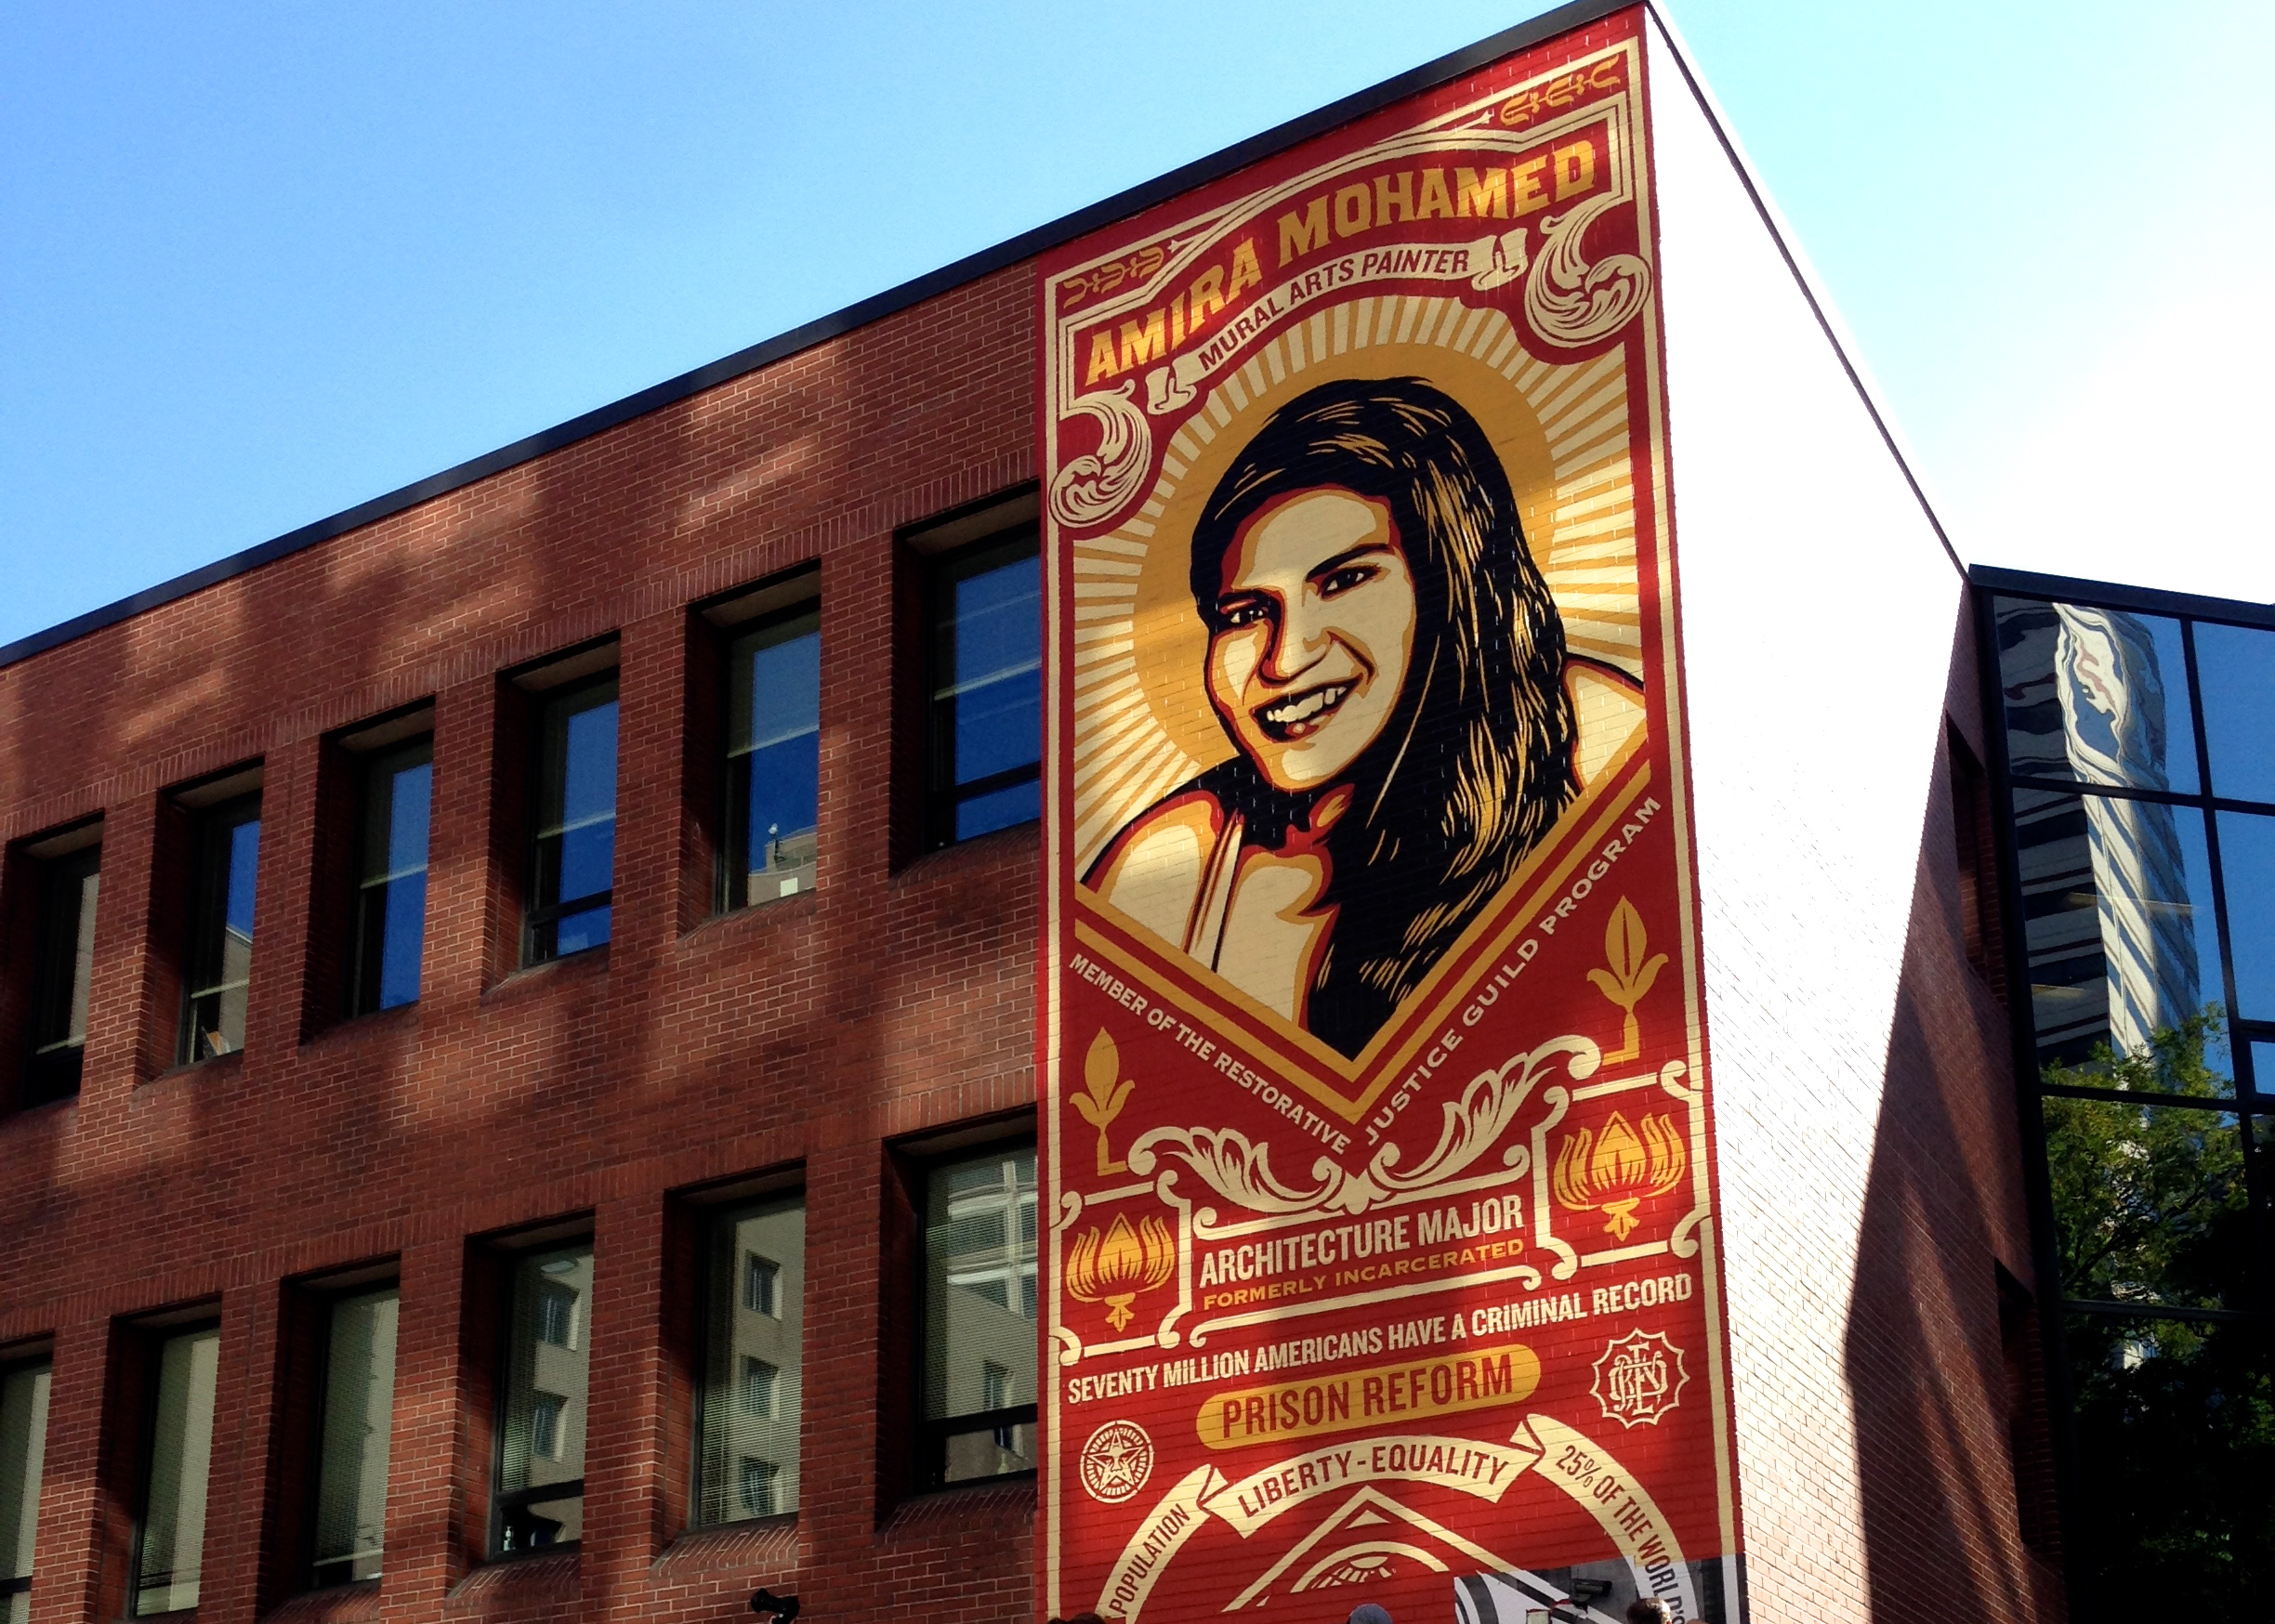 Amira Mohamed mural on the Friends Center